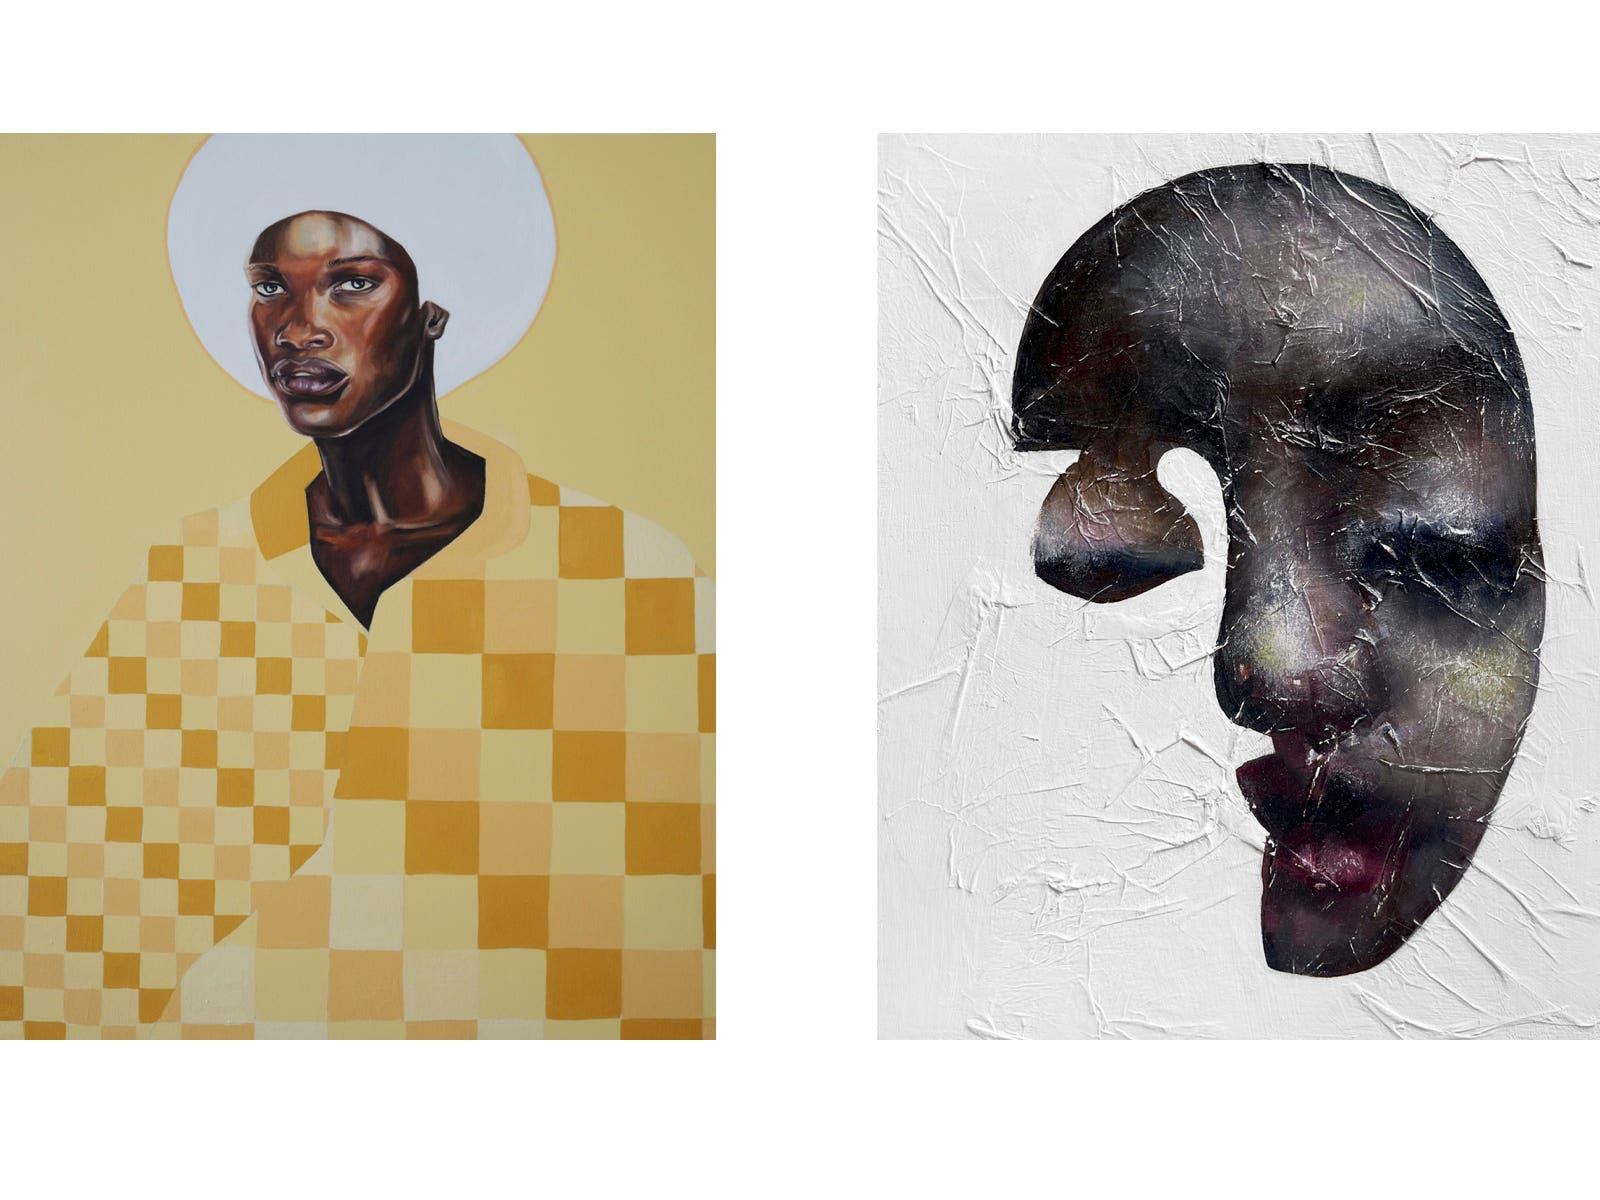 Work by Lauren Pearce (left) and Yulia Bas (right) for the upcoming show Art Genesis curated by Mashonda Tifrere